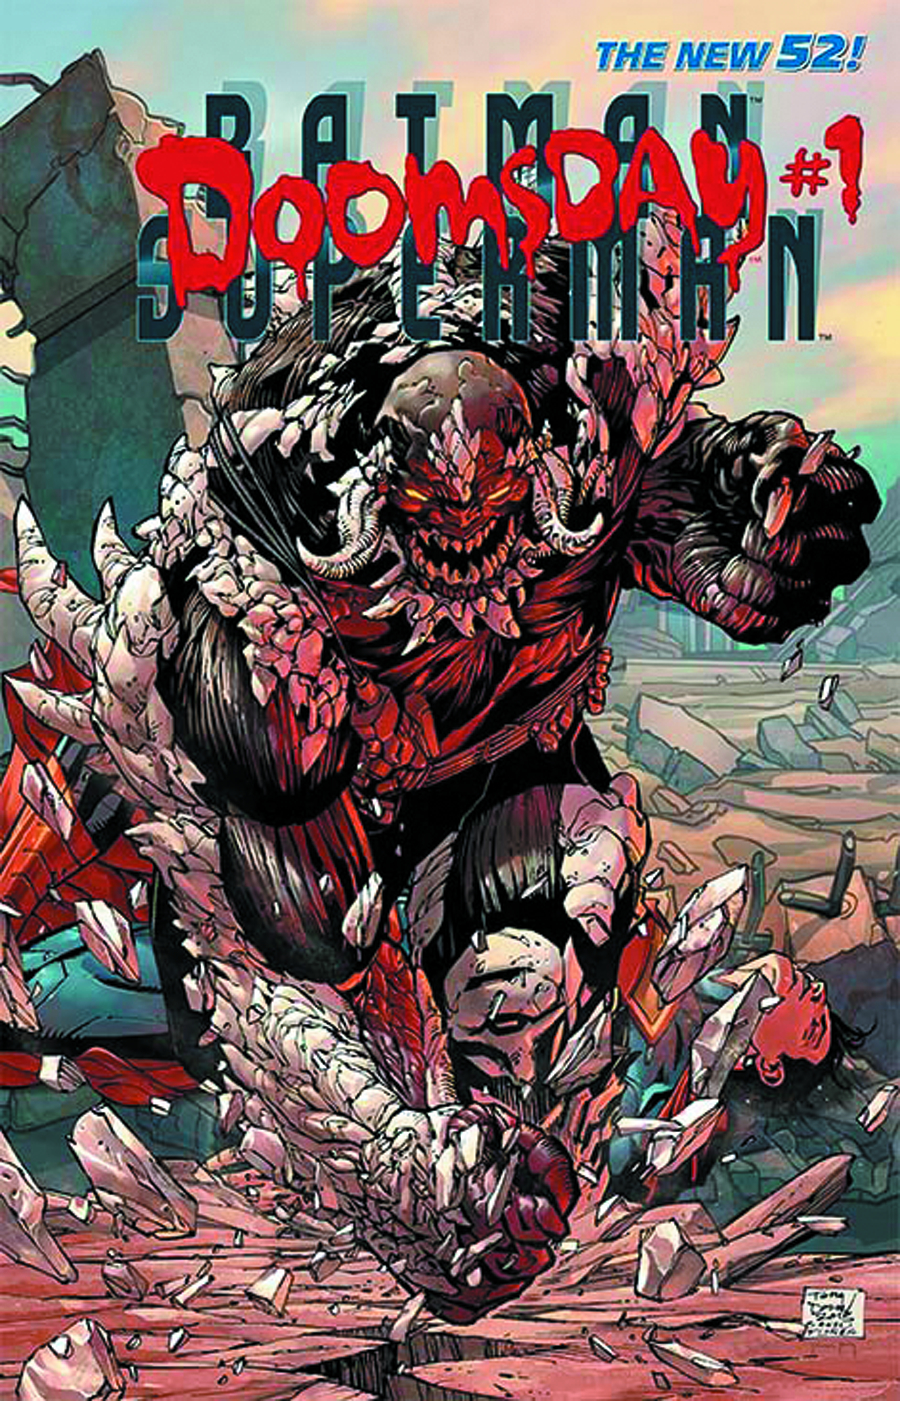 BATMAN SUPERMAN #3.1 DOOMSDAY STANDARD ED